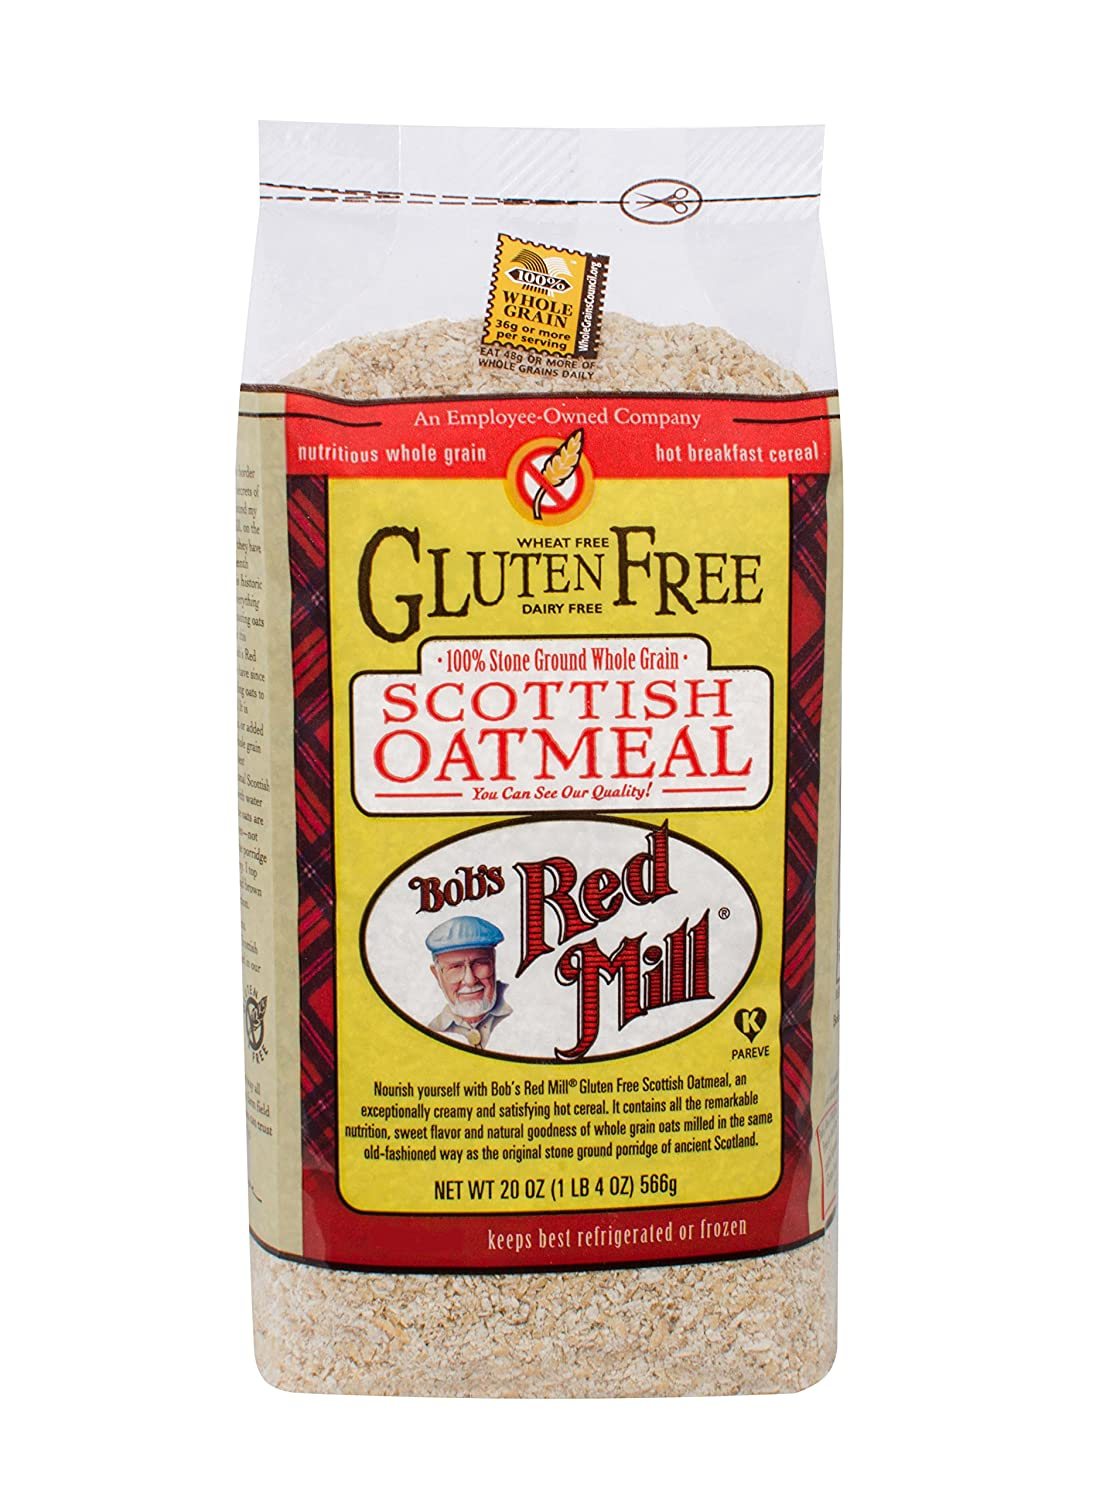 Bob's Red Mill Scottish Oatmeal, Gluten Free, 20 Ounce (Pack of 4)